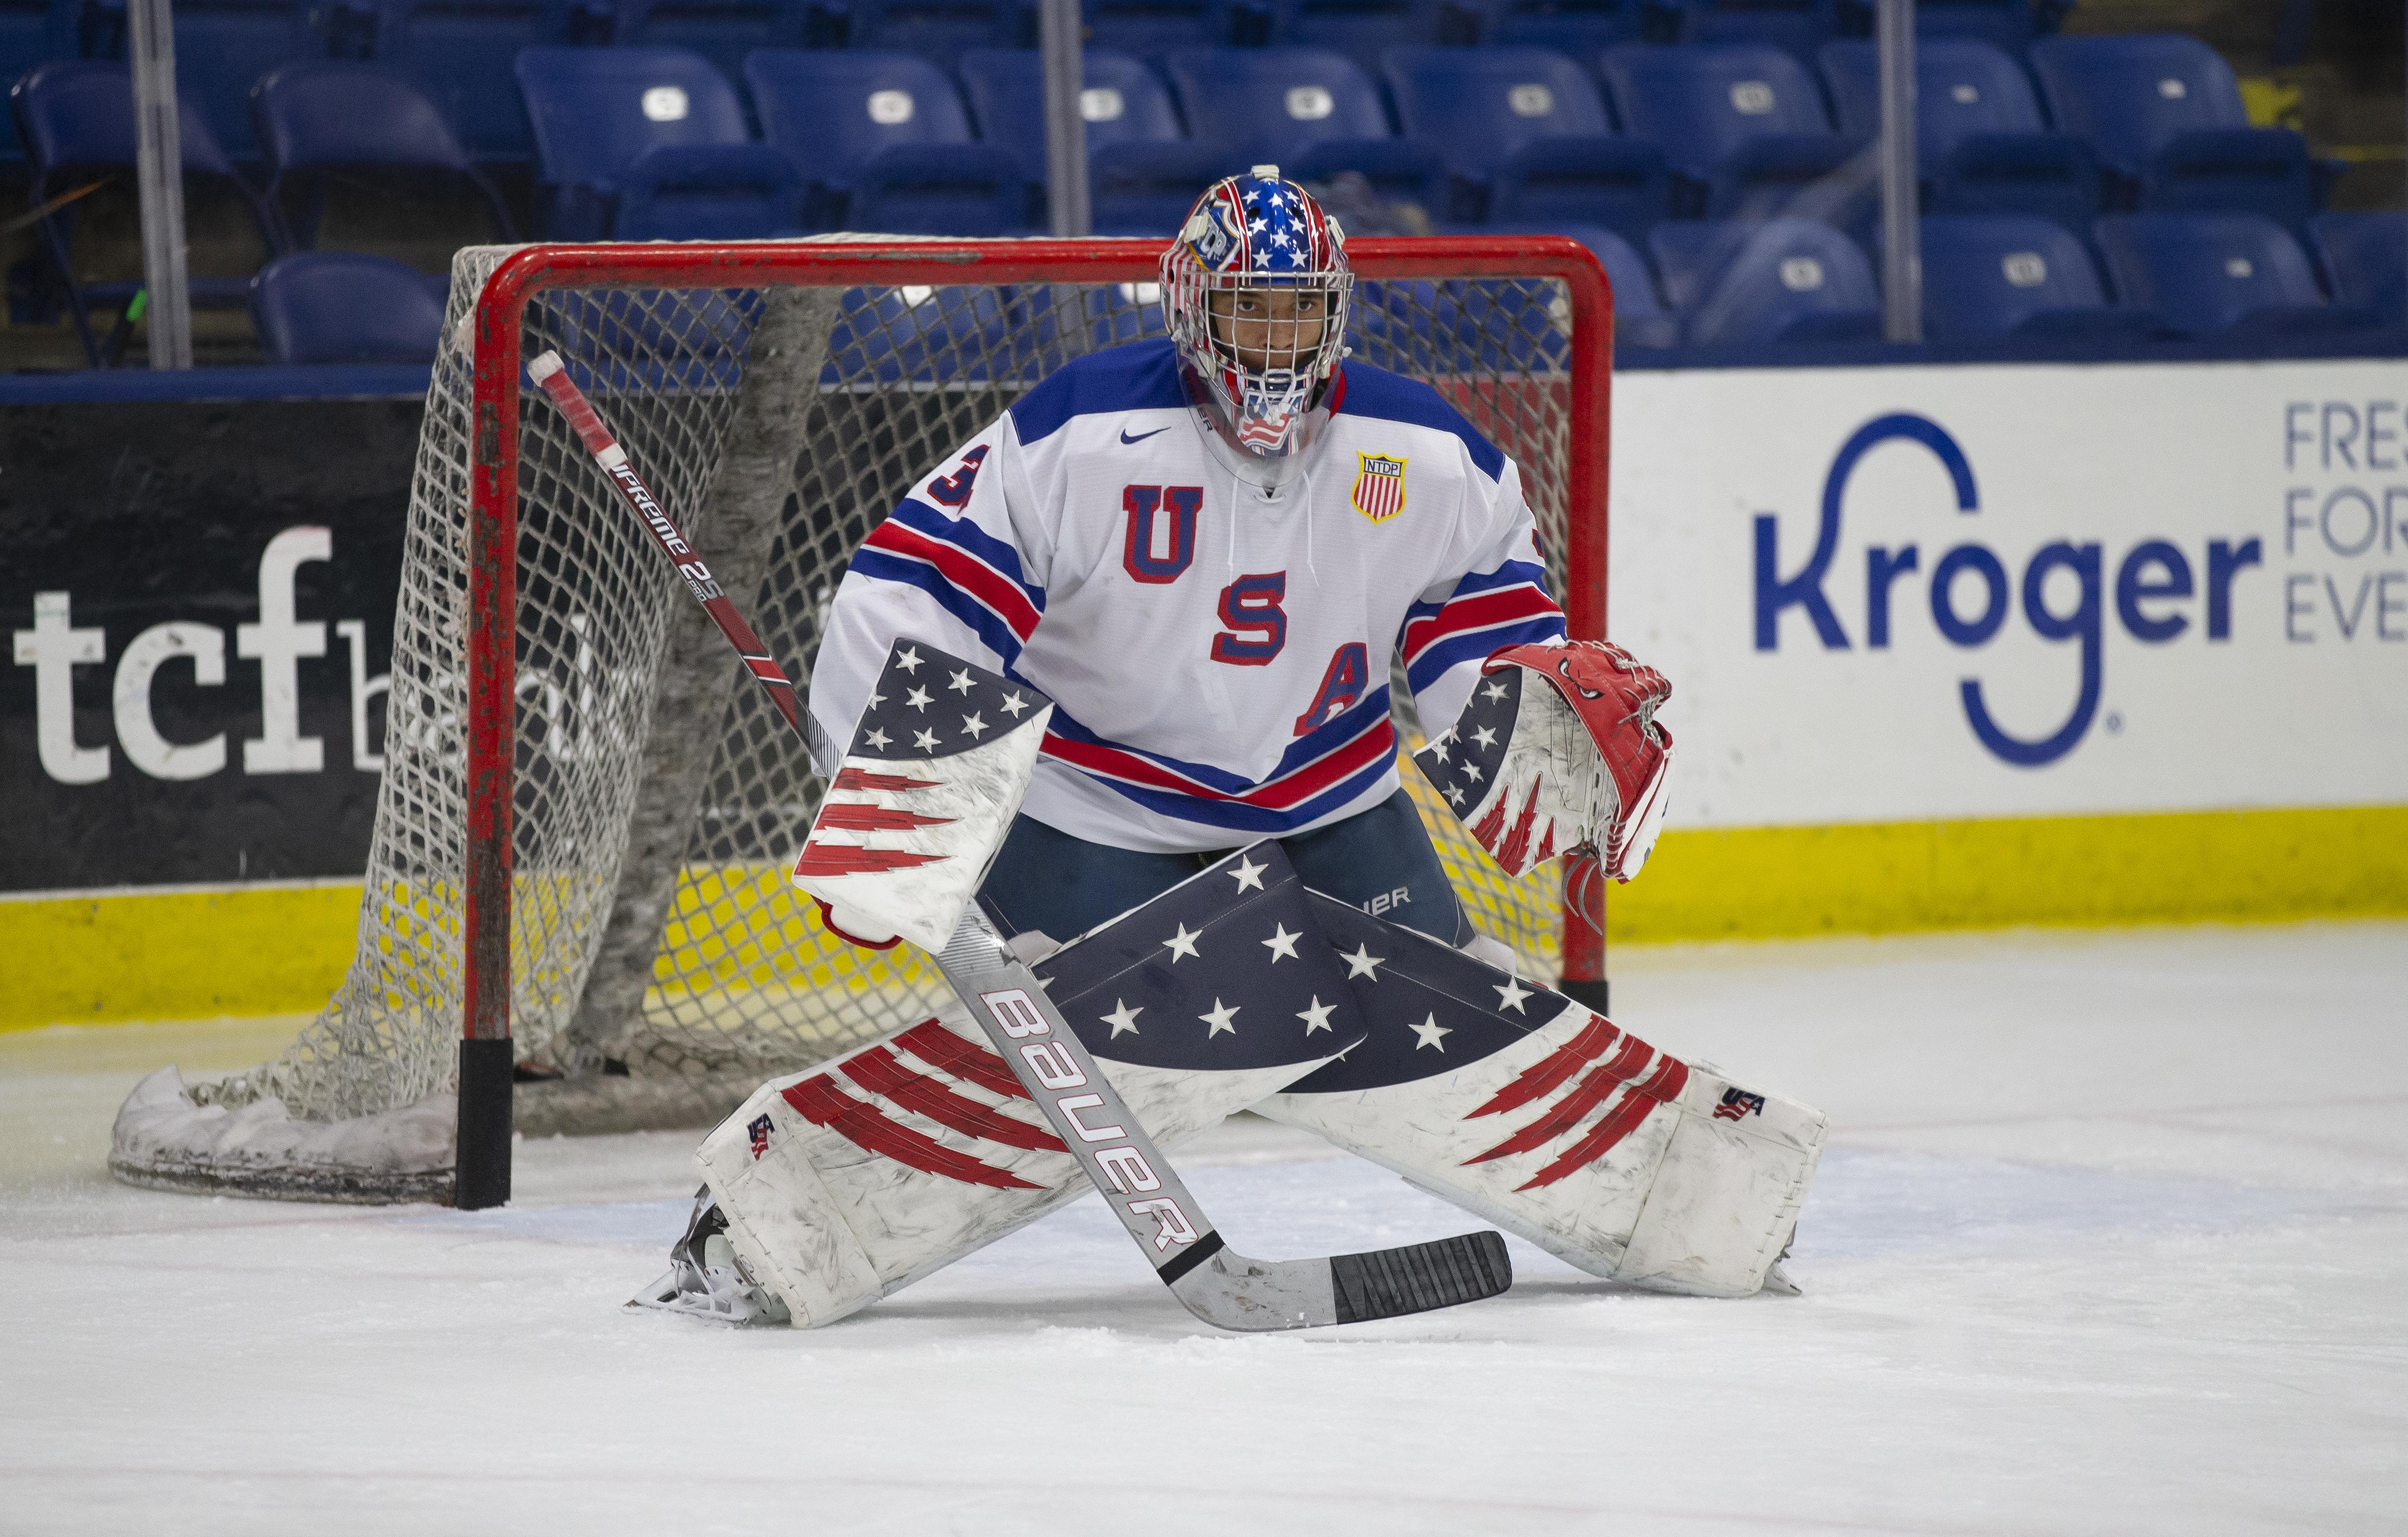 After two seasons in net for USA Hockey's National Team Development Program, Kaidan Mbereko has committed to play collegiately at Colorado College. Photo by Rena Laverty, USA Hockey NTDP